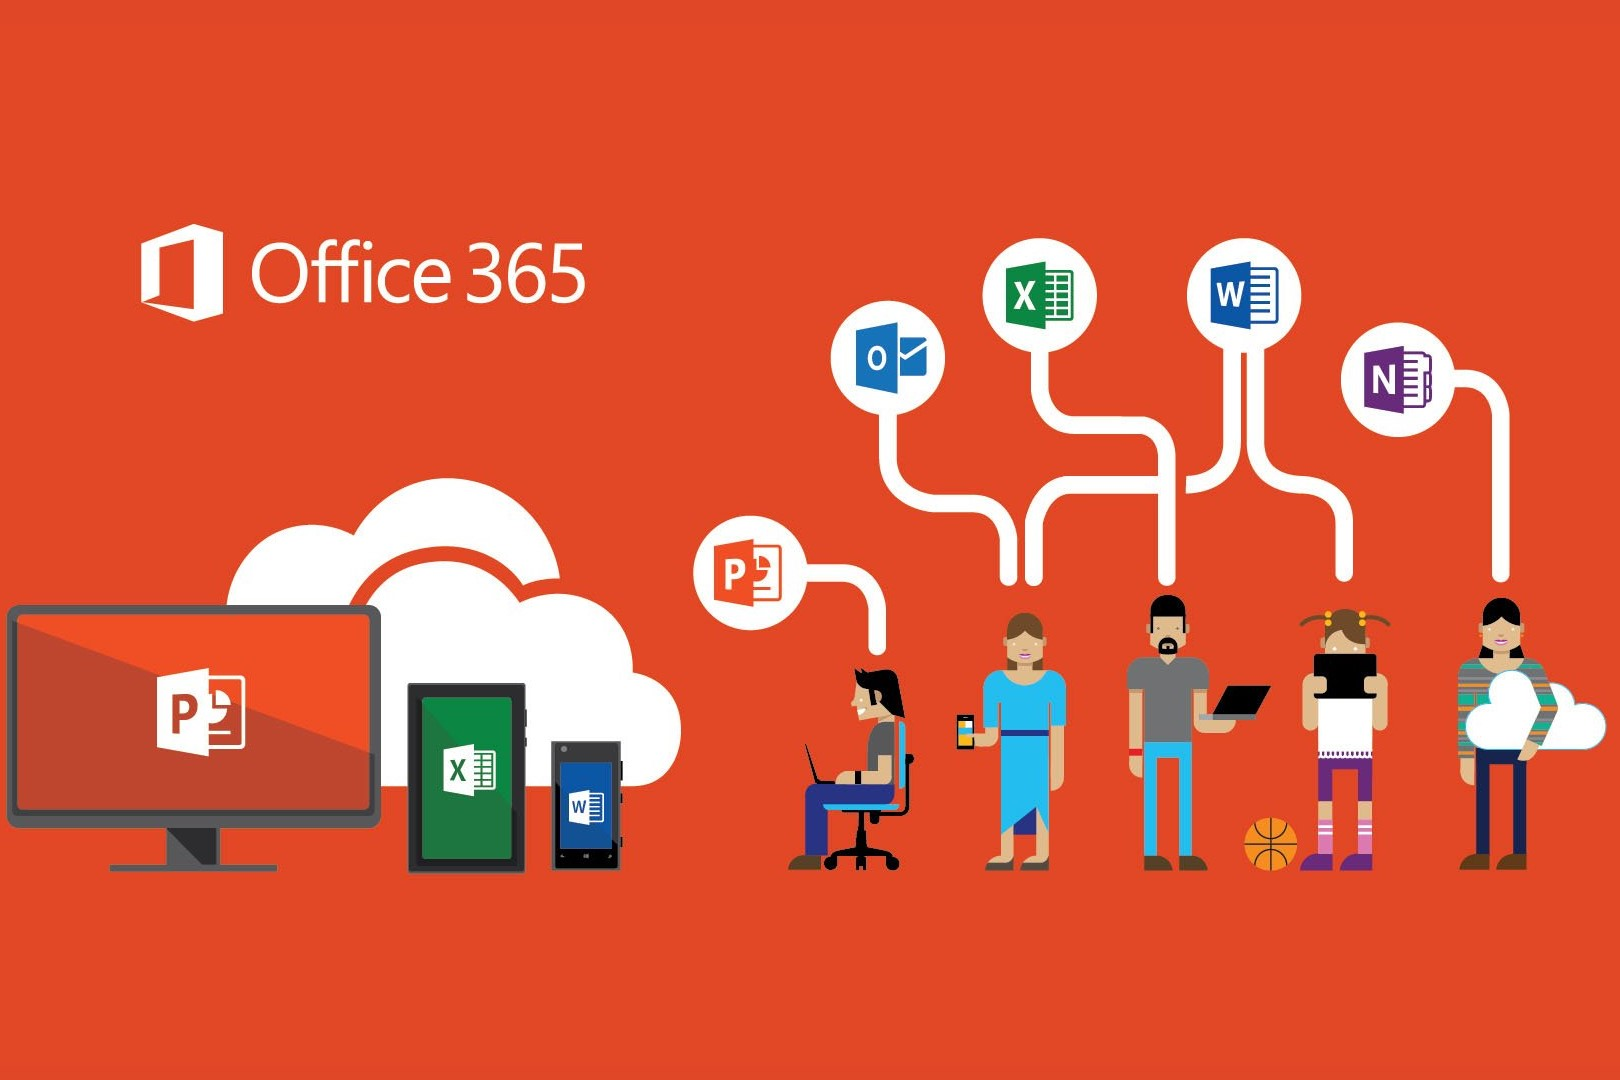 PRODUCTIVIDAD EN OFFICE 365